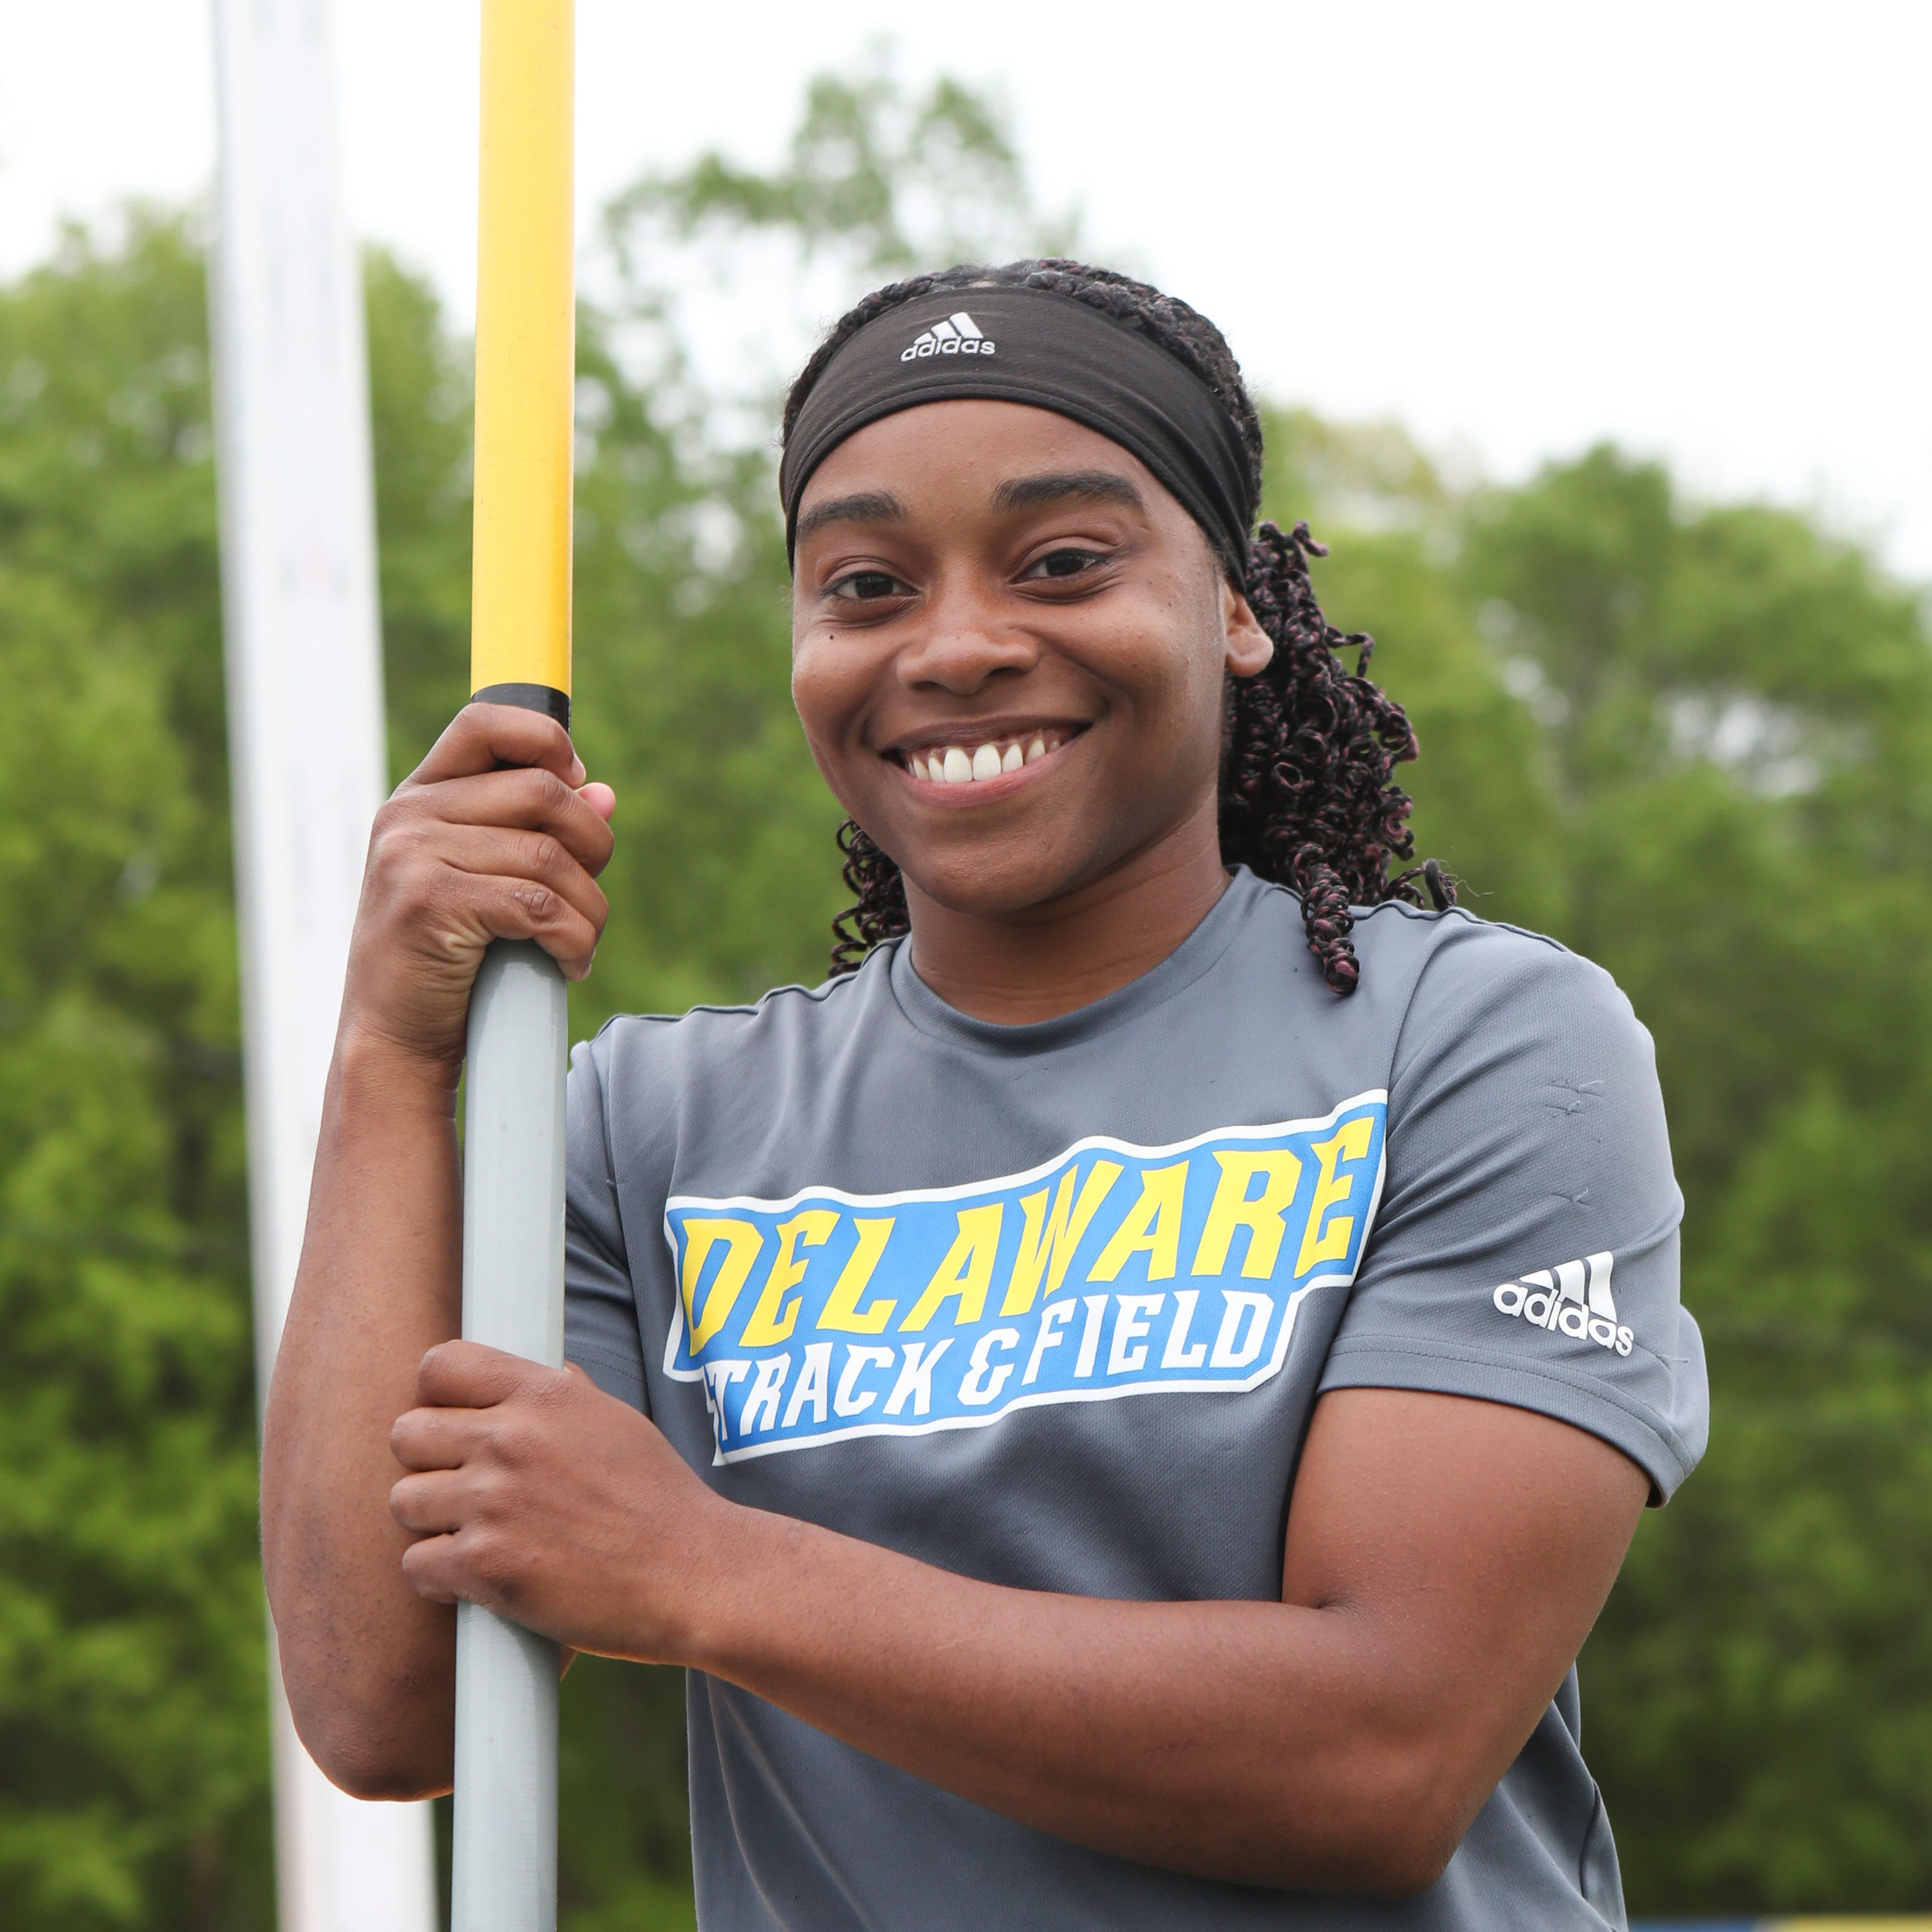 Driven by inspirational hero, Delaware pole vault star soars, shatters records